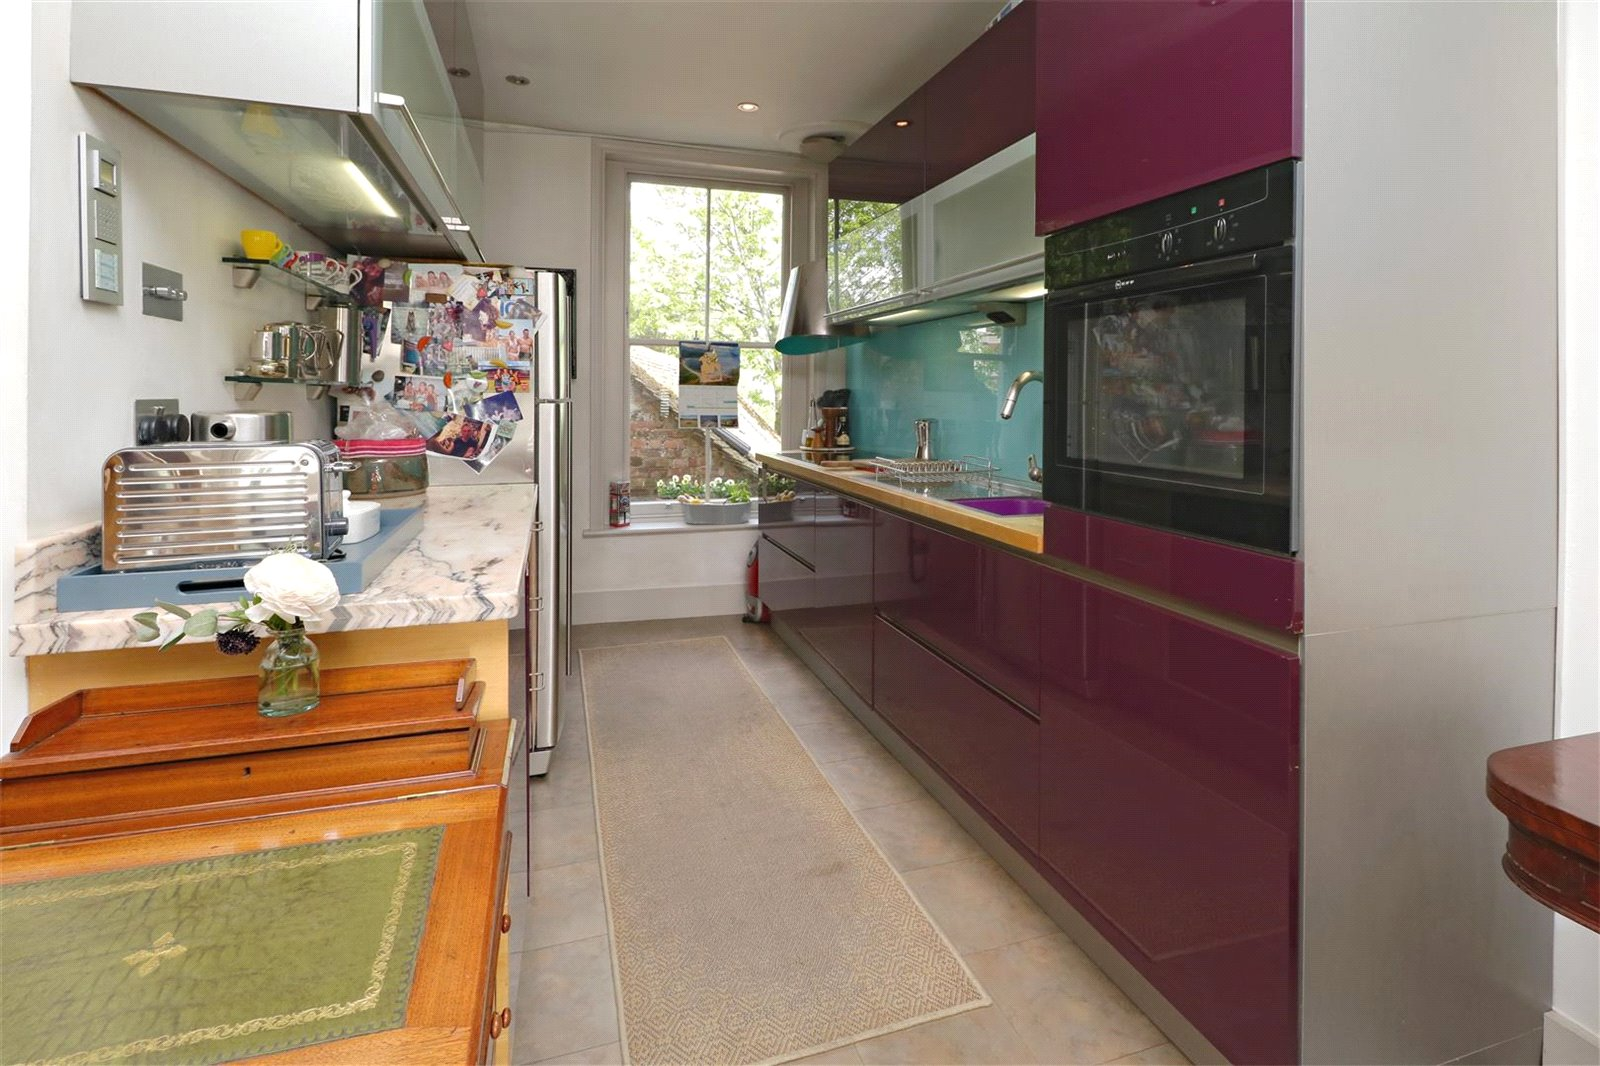 House for sale in Highgate, N6 5HX  - Property Image 8